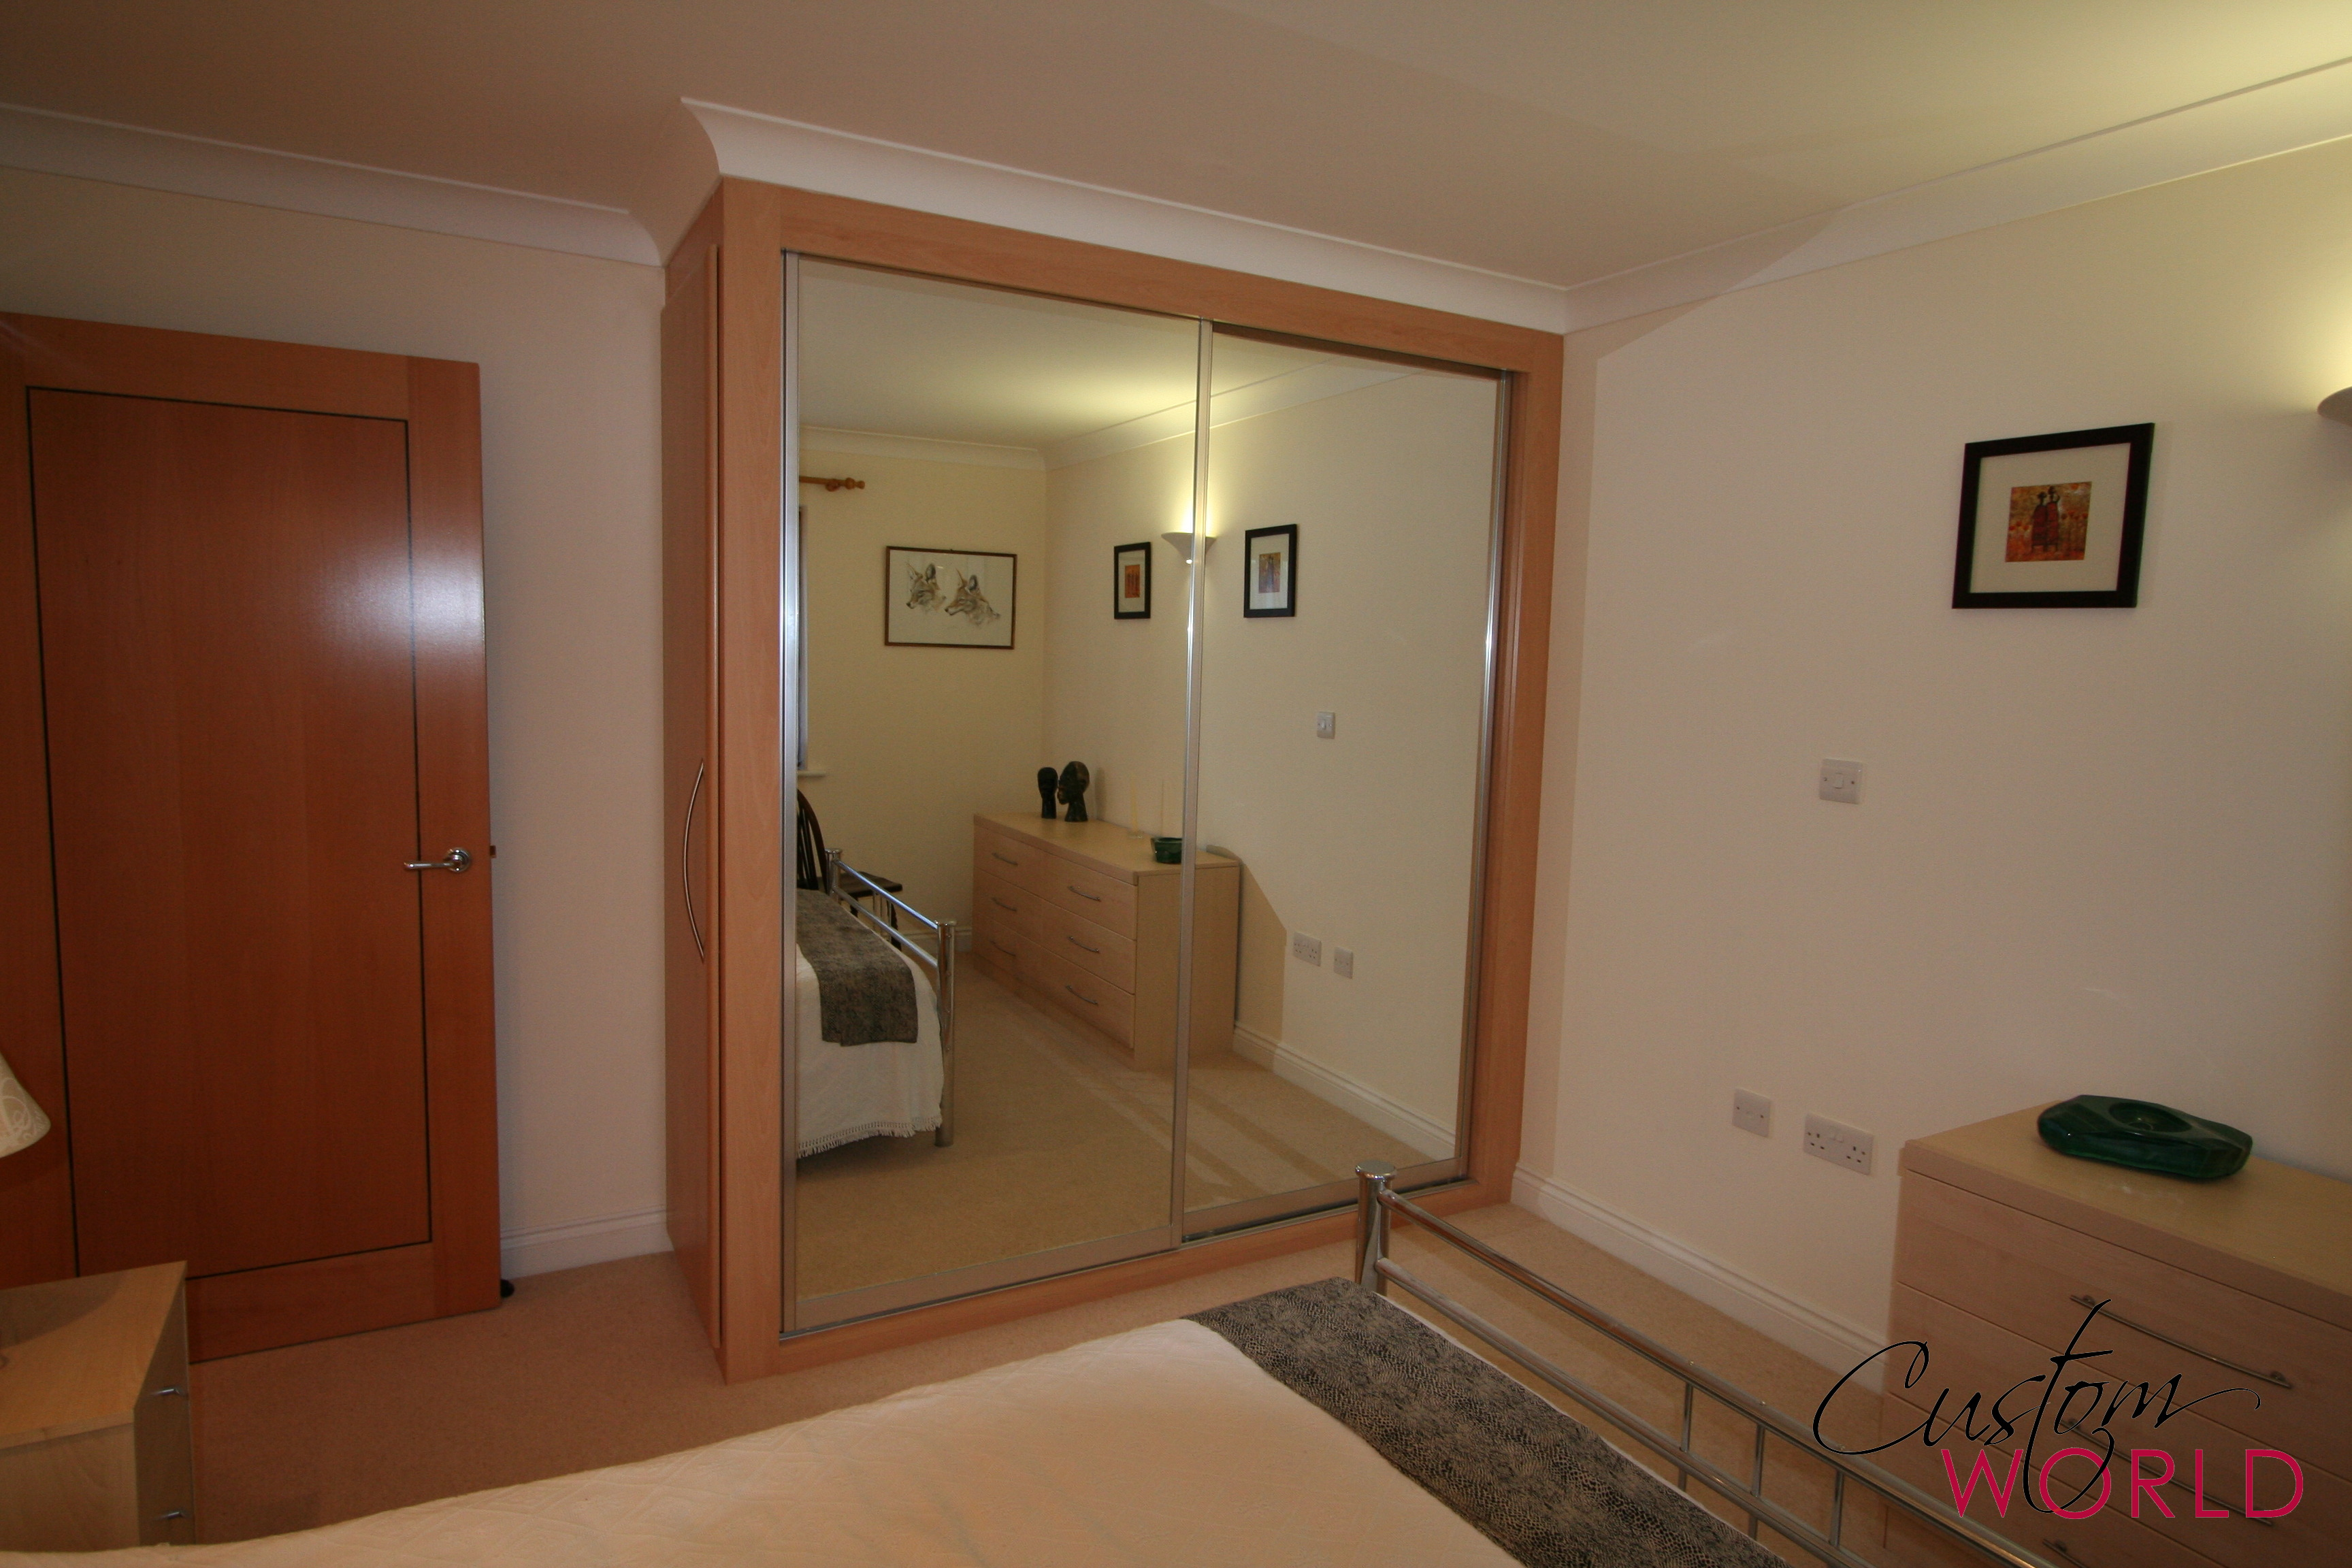 2 door mirror sliding wardrobe